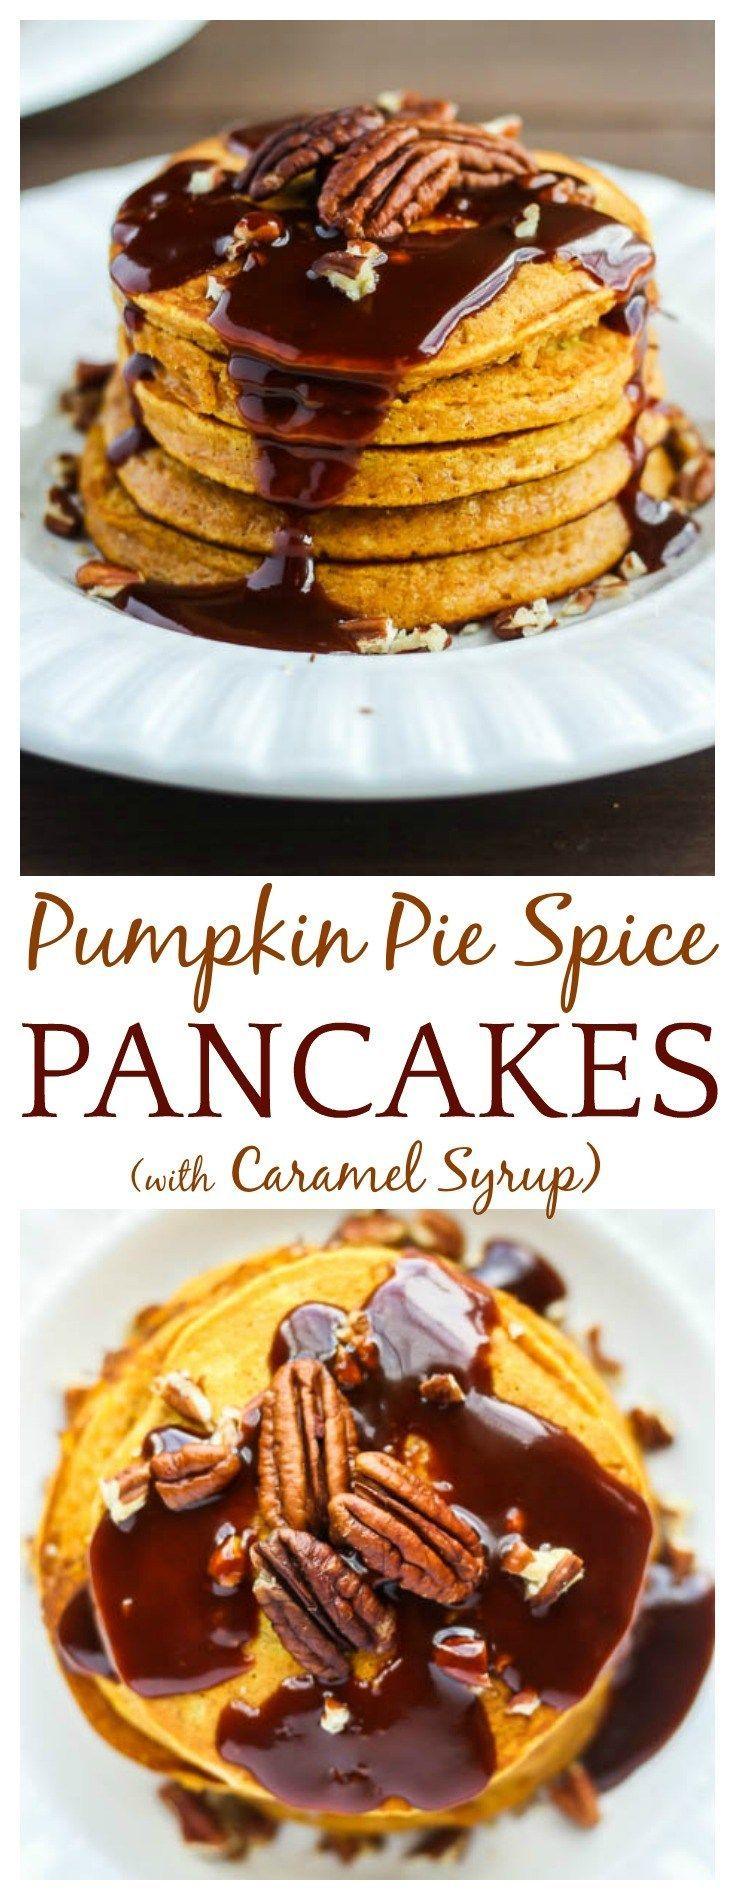 After falling in love with sweet potato pancakes, it was time to finally try pumpkin pancakes! This recipe for Pumpkin Pie Spice Pancakes with Caramel Syrup is amazing! The pancakes are fluffy, moist, and full of delicious fall flavors.| #pumpkin #pumpkinspice #pumpkinpancakes #pancakes #breakfast #brunch #fallrecipes #DLB #comfortfood